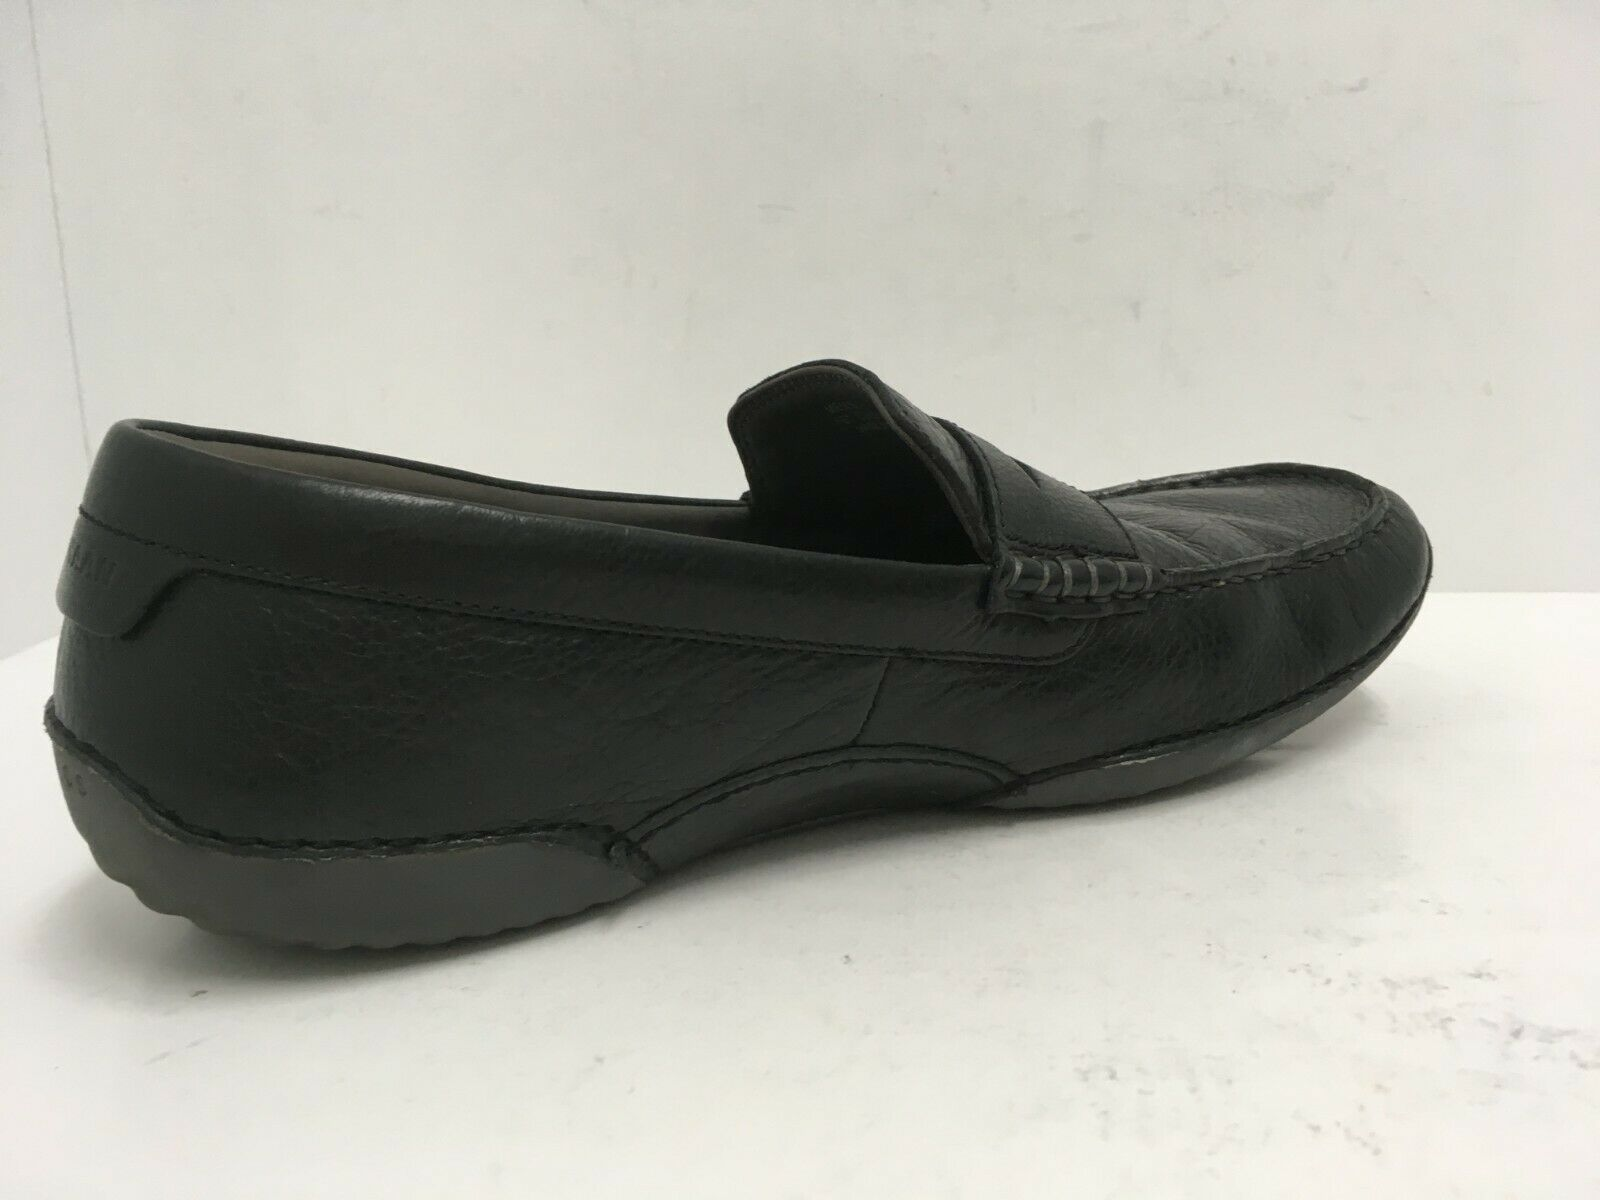 Cole Haan Men's MOTOGRAND Penny Loafer Black Leather Driving Shoes Size 11M GUC image 6